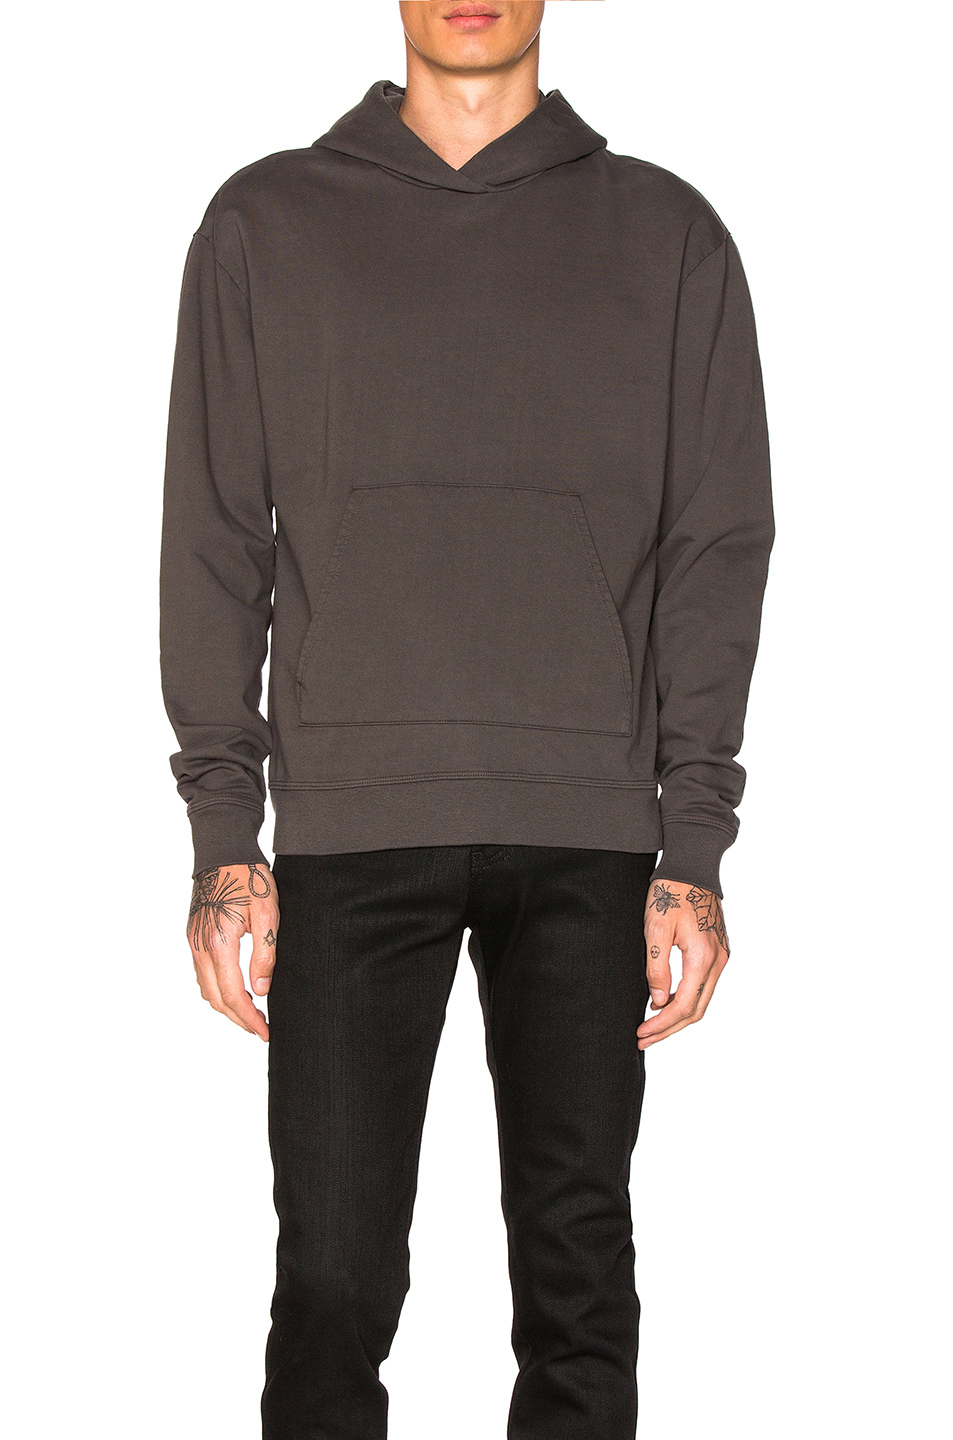 JOHN ELLIOTT Oversized Cropped Hoodie in Gray